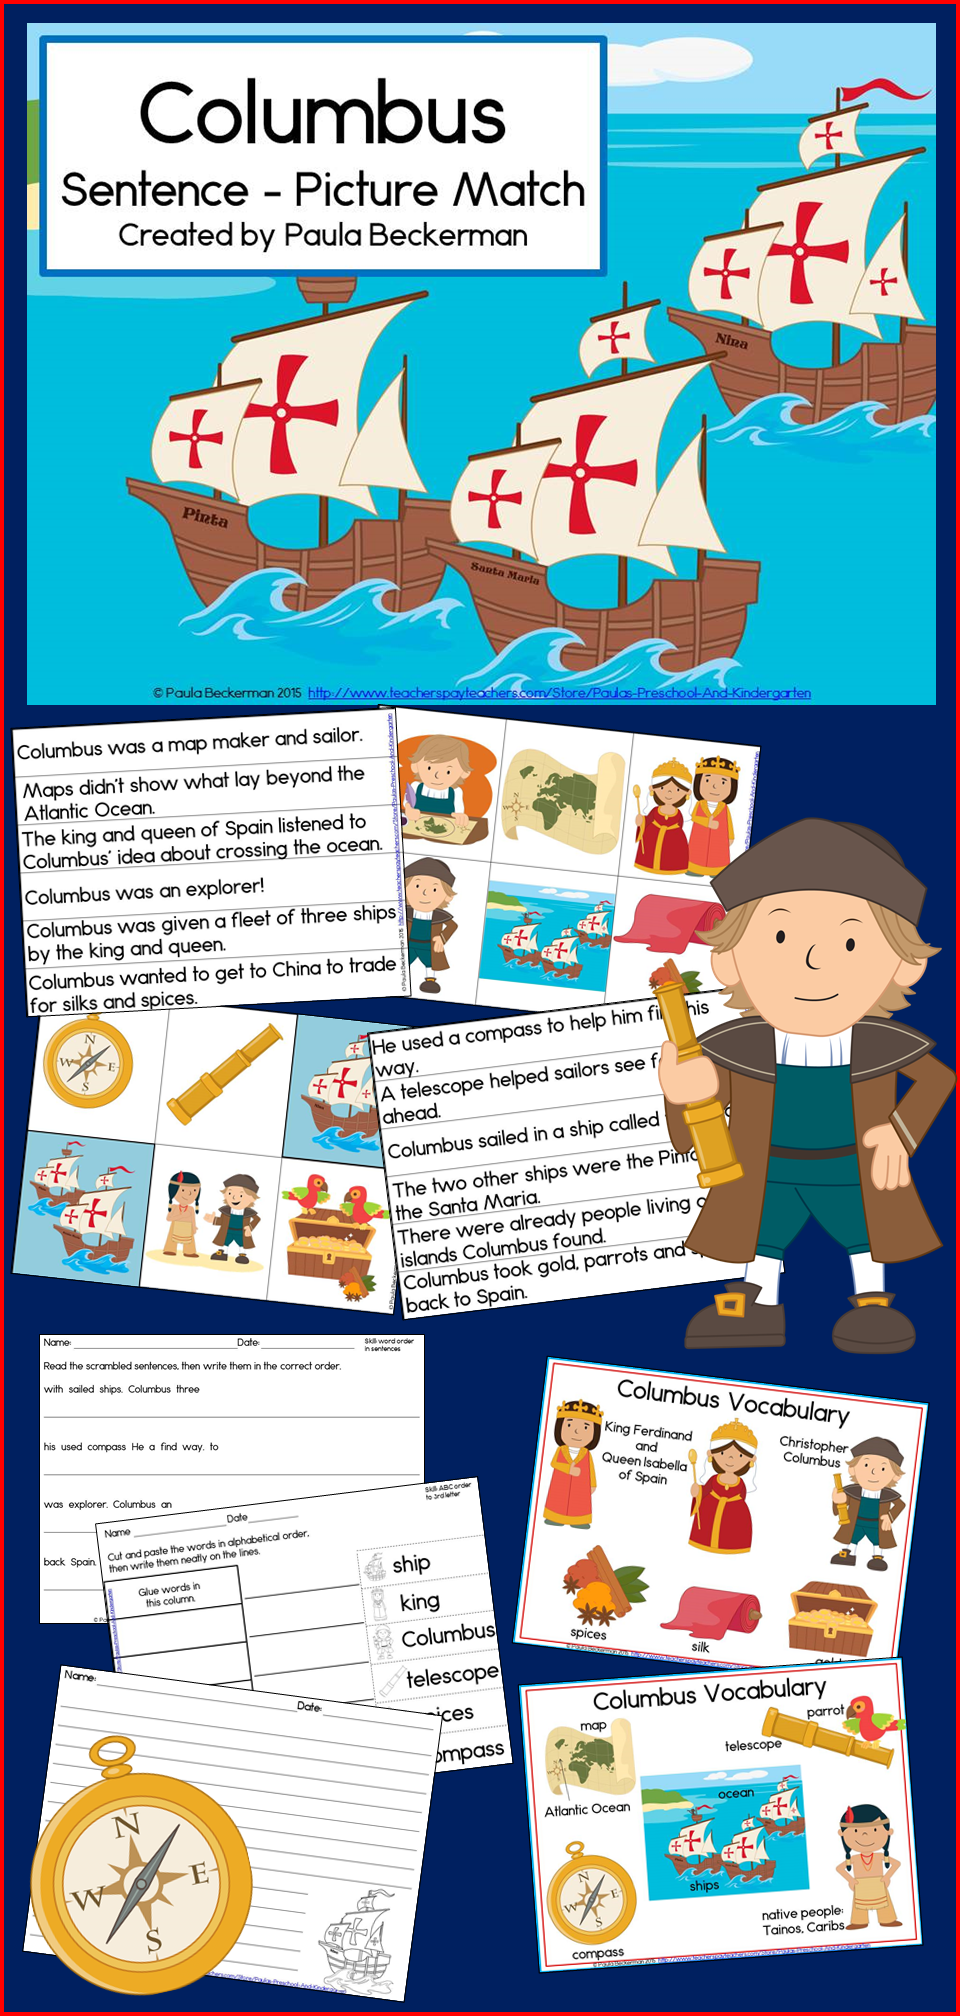 Columbus Day Learning That Combines Reading And Social Studies In One Fun Activity Columbus Sentence Picture Match Will Delight Your Students Creative Teaching